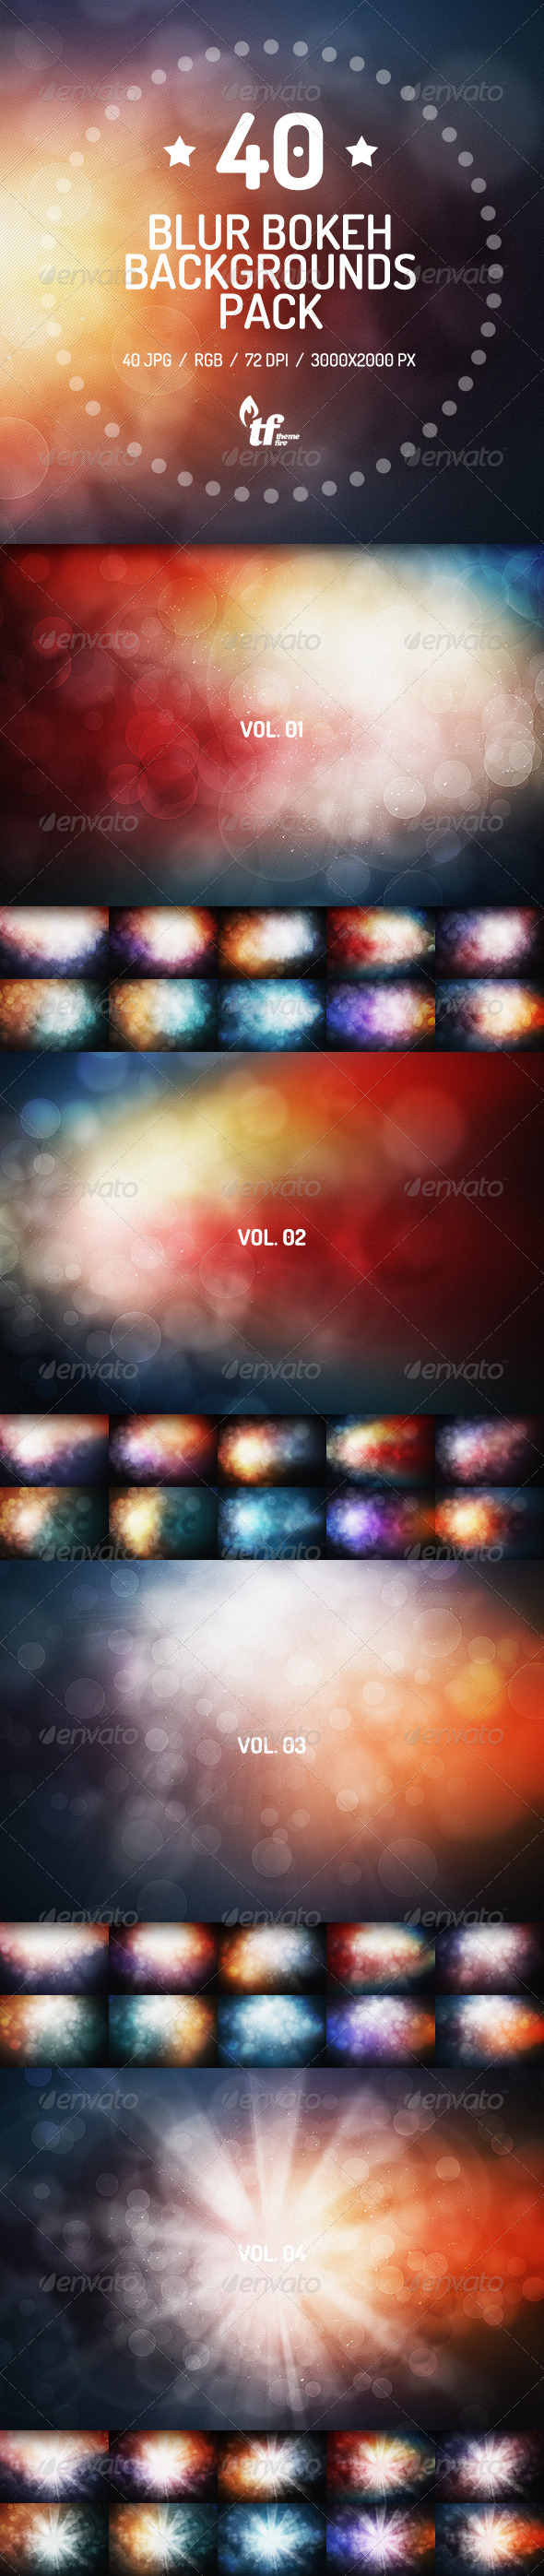 40 Color Blurred Bokeh Backgrounds Pack